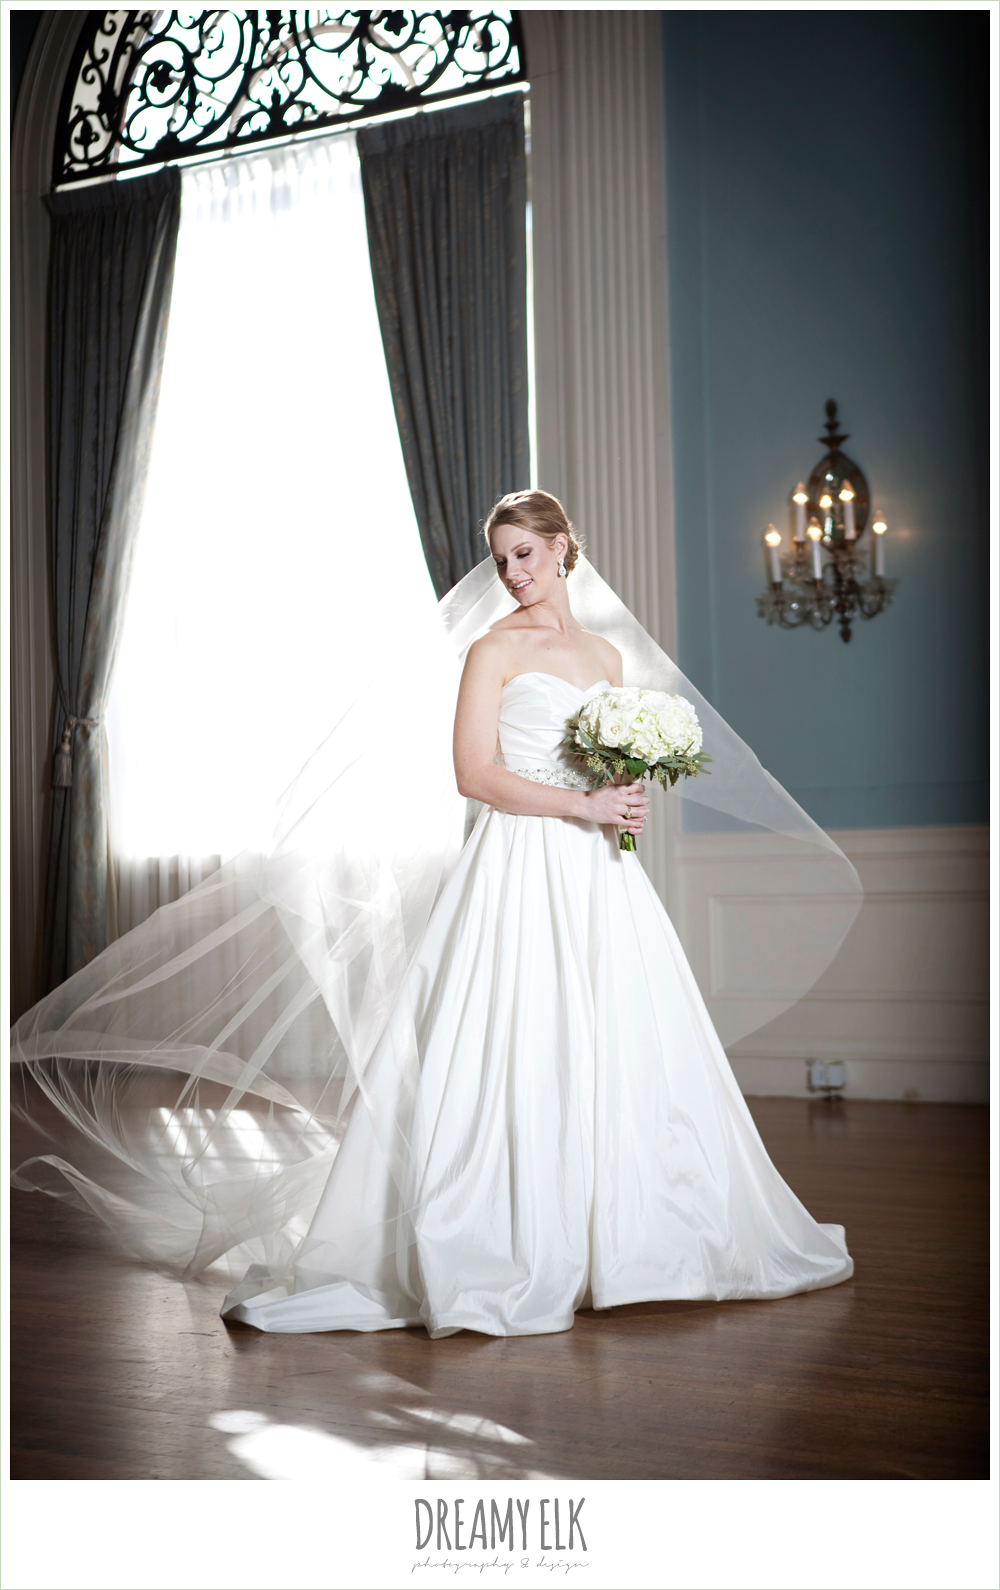 indoor bridal photo, cathedral length veil, dreamy elk photography and design